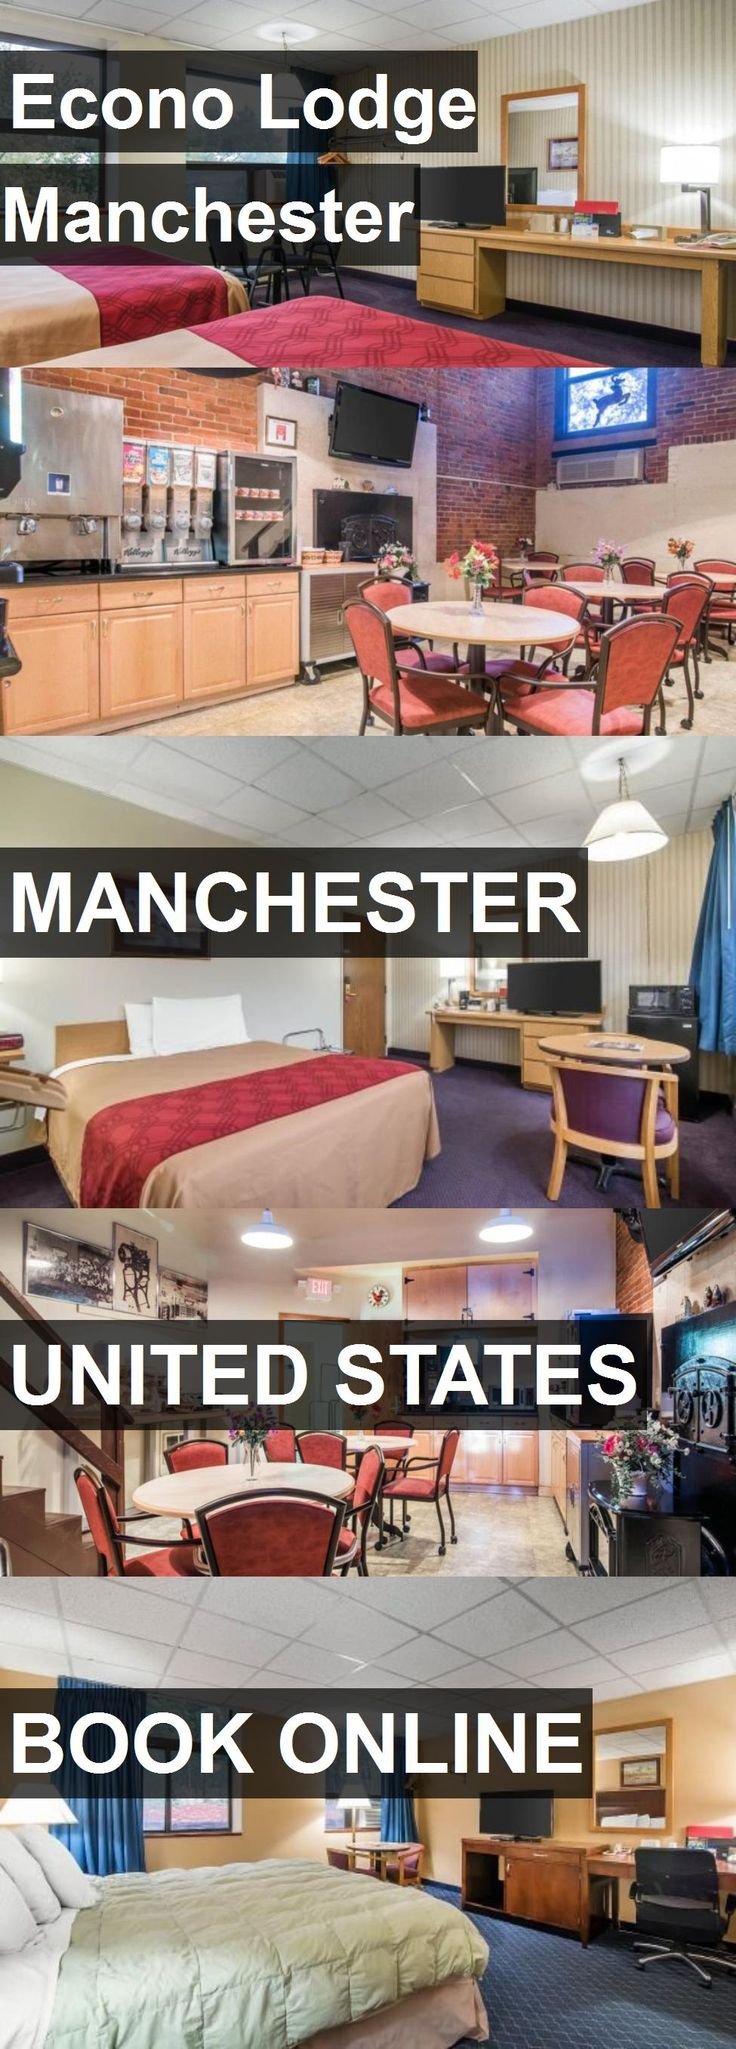 Hotel Econo Lodge Manchester in Manchester, United States. For more information, photos, reviews and best prices please follow the link. #UnitedStates #Manchester #travel #vacation #hotel